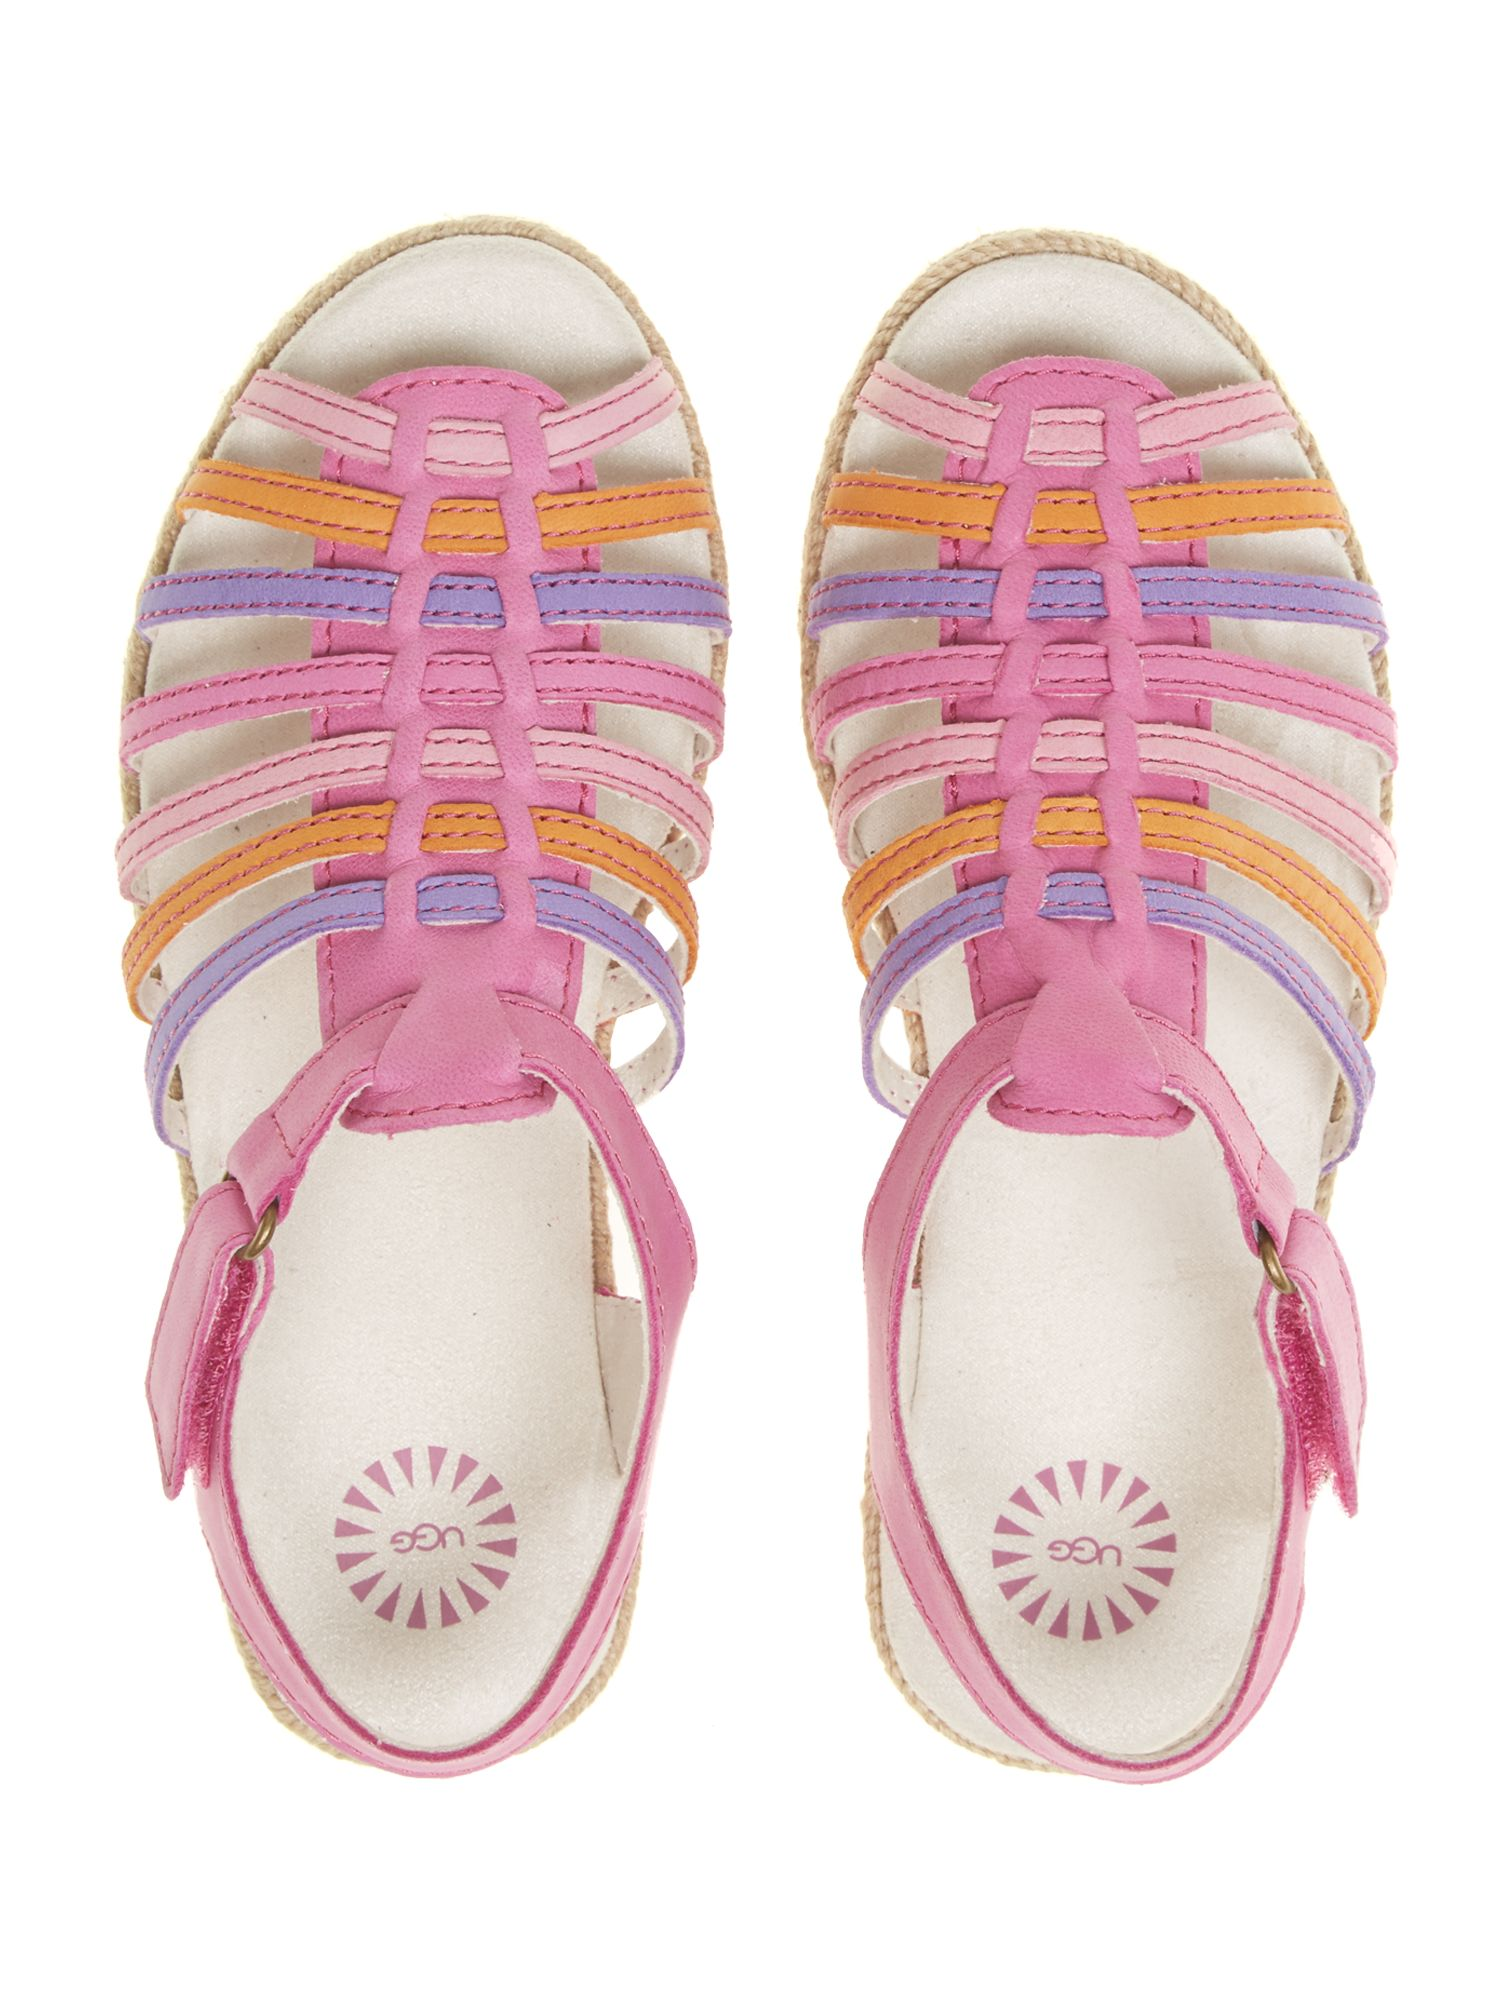 Girls sandal